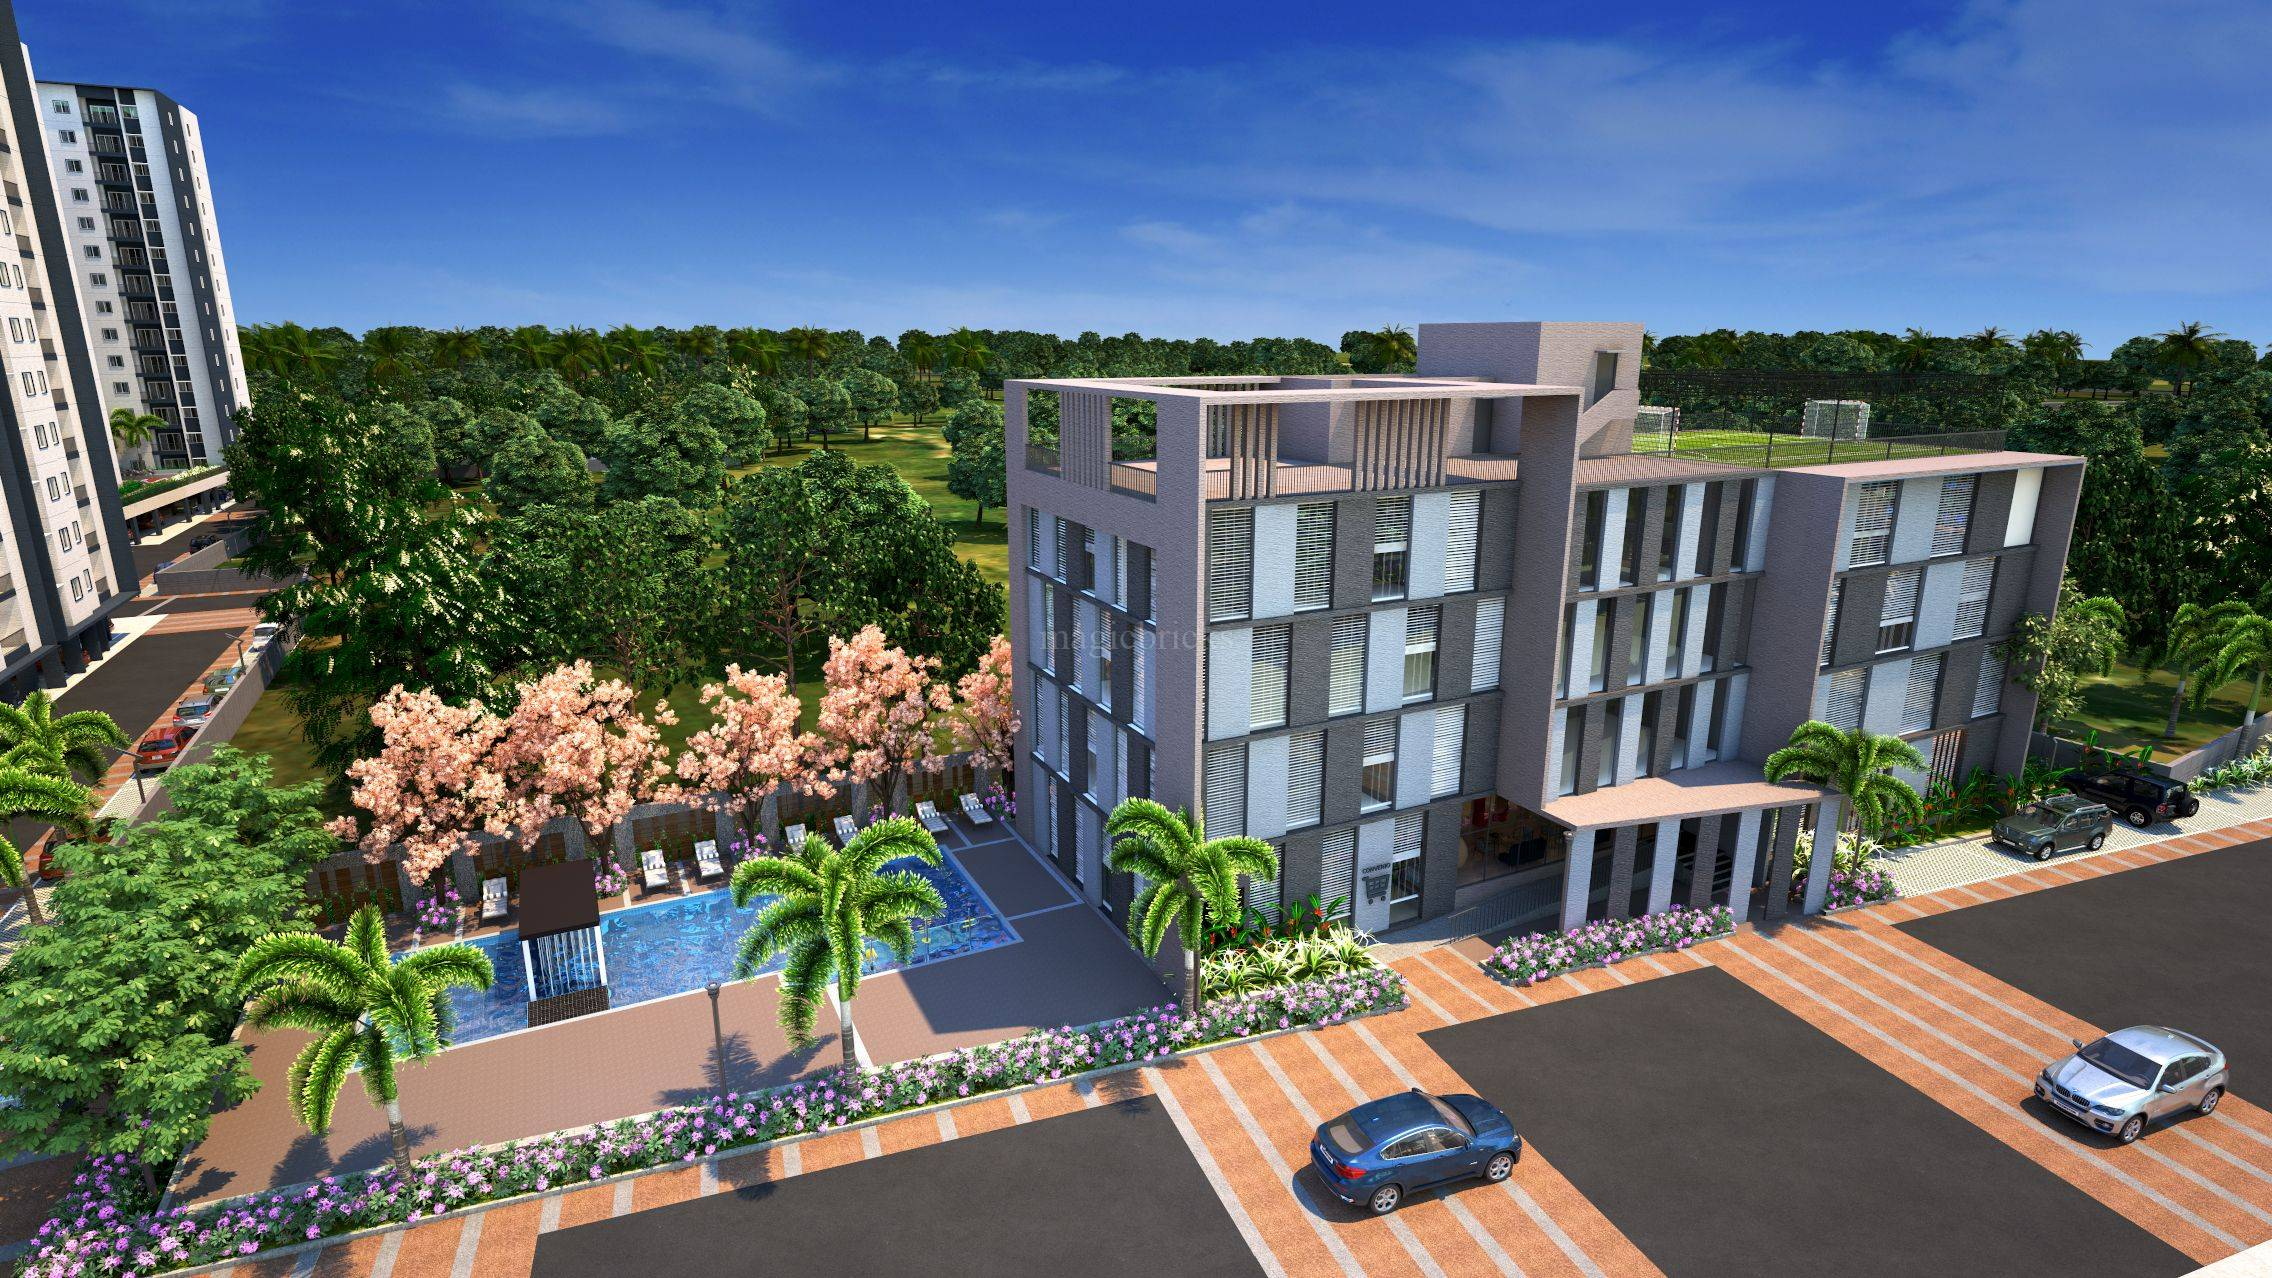 Casagrand launches Casagrand zenith in Medavakkam